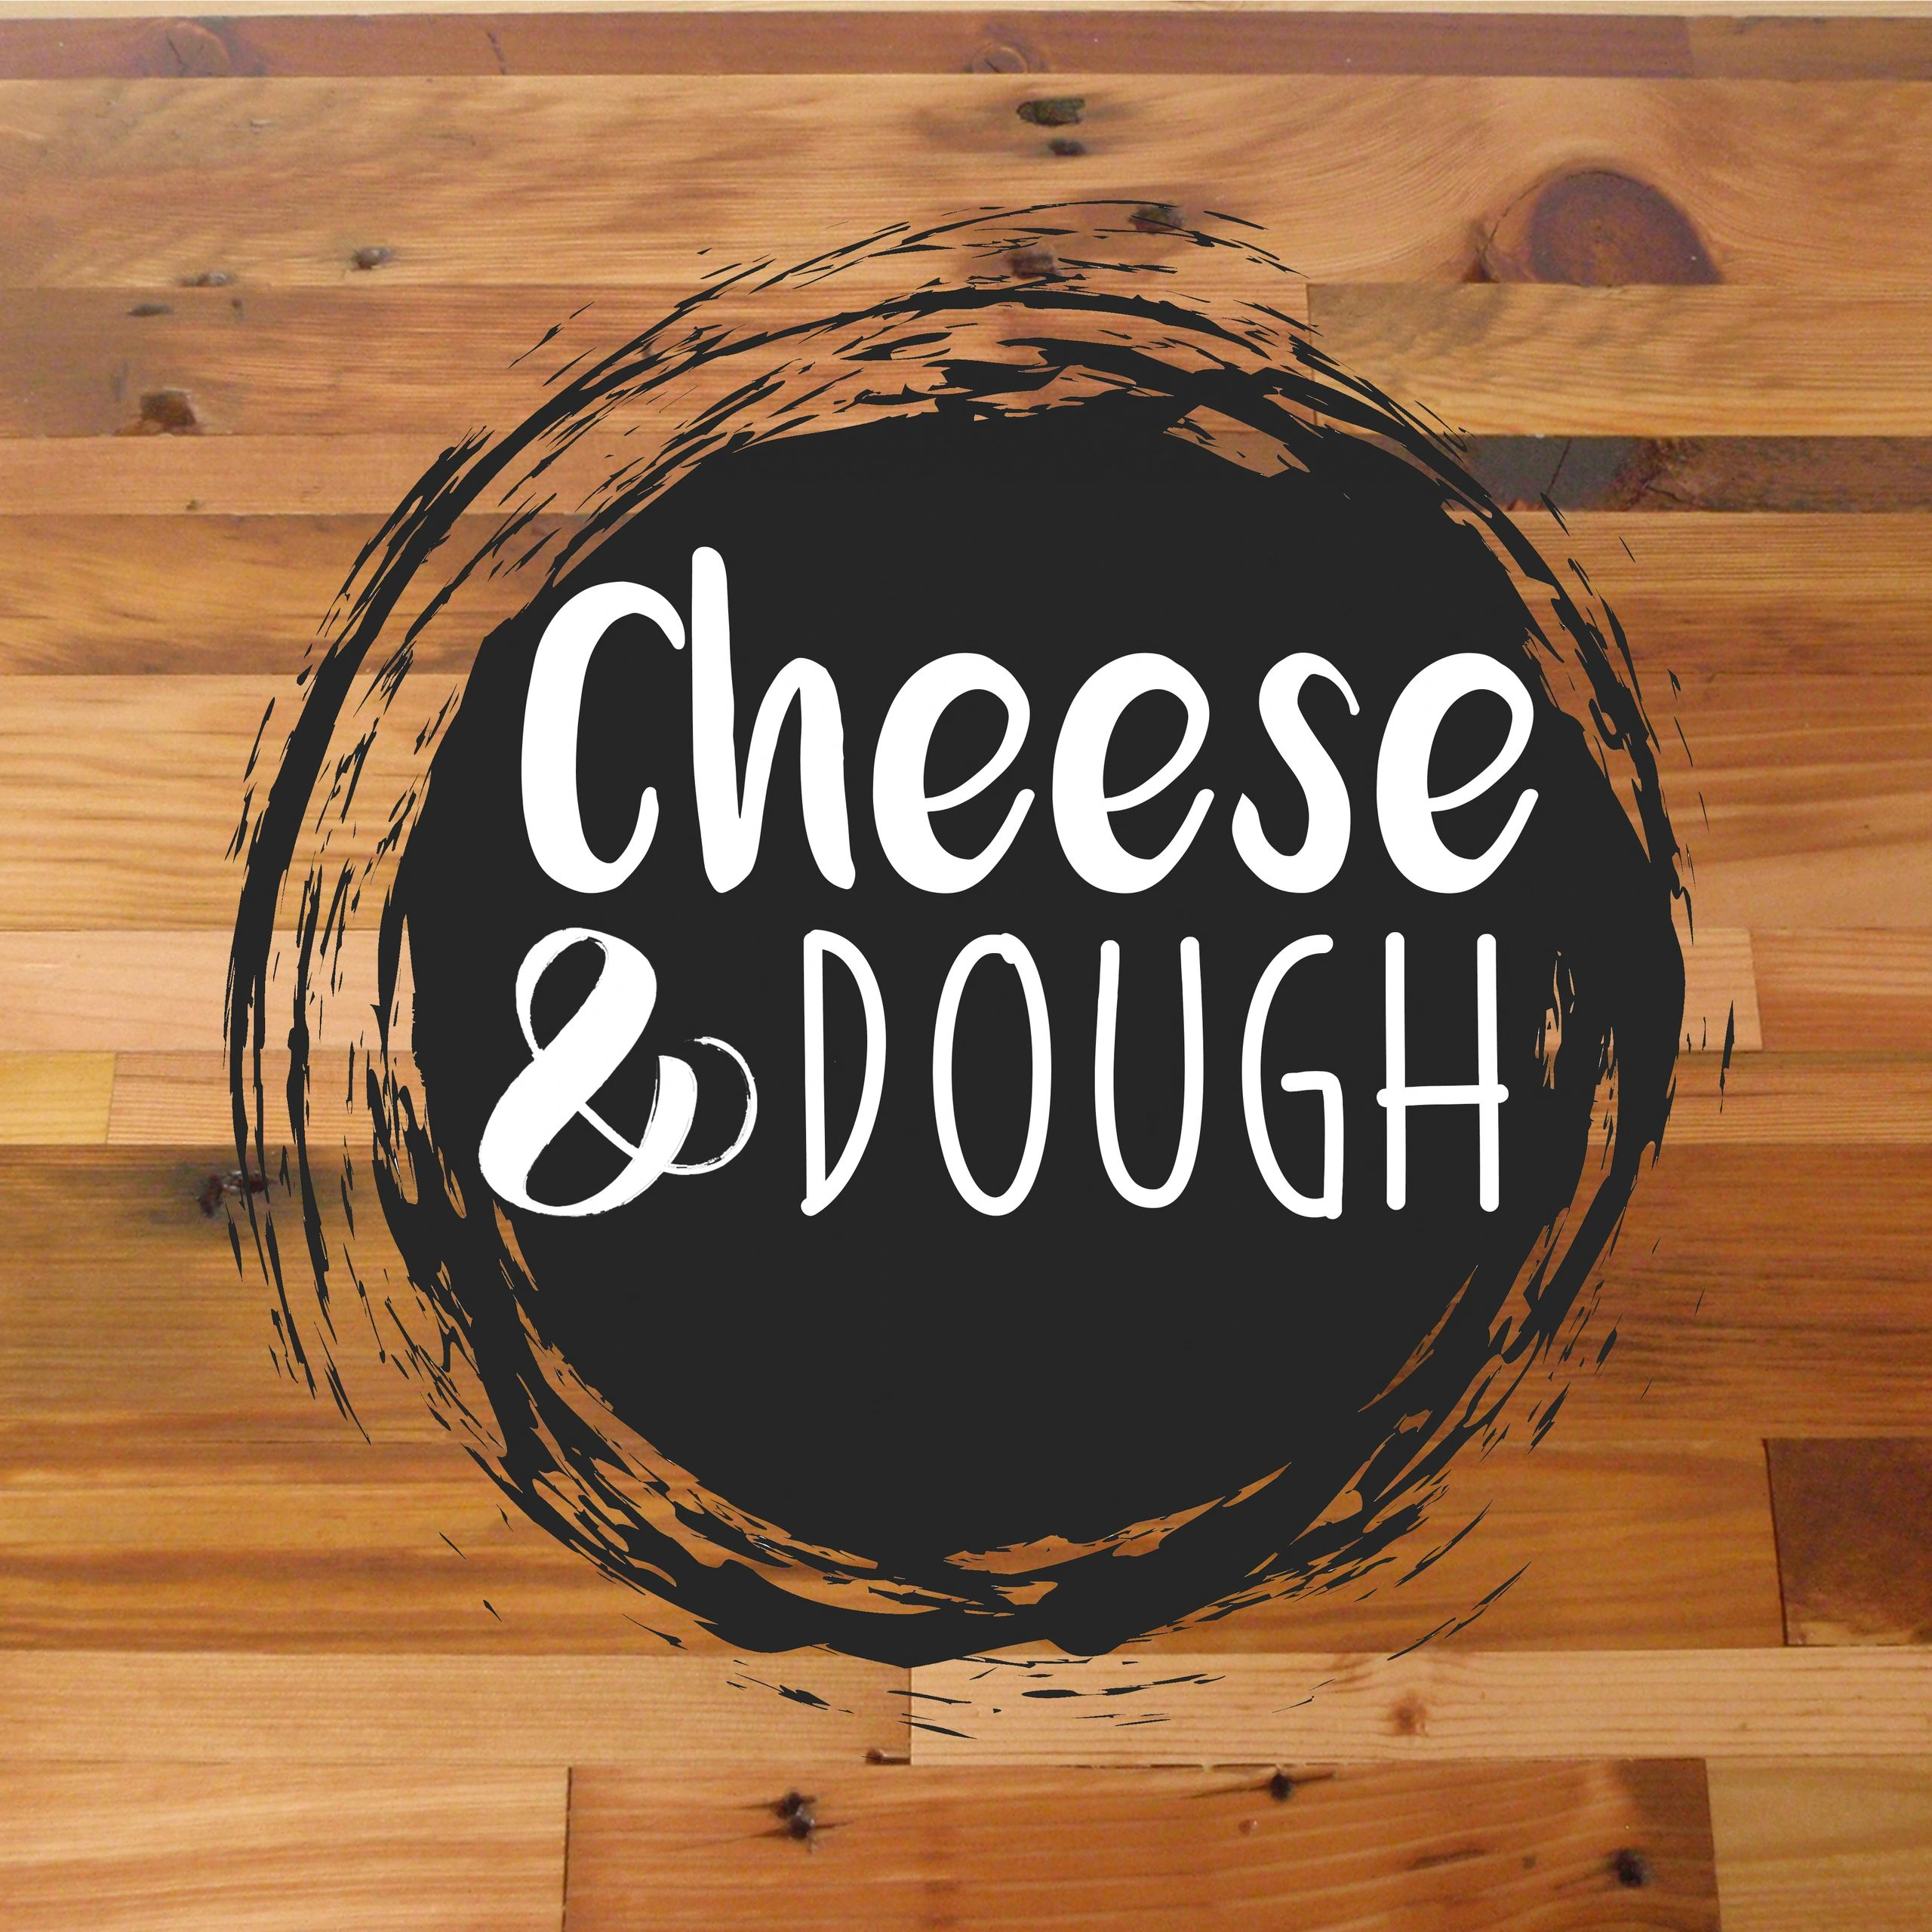 Cheese and dough logo